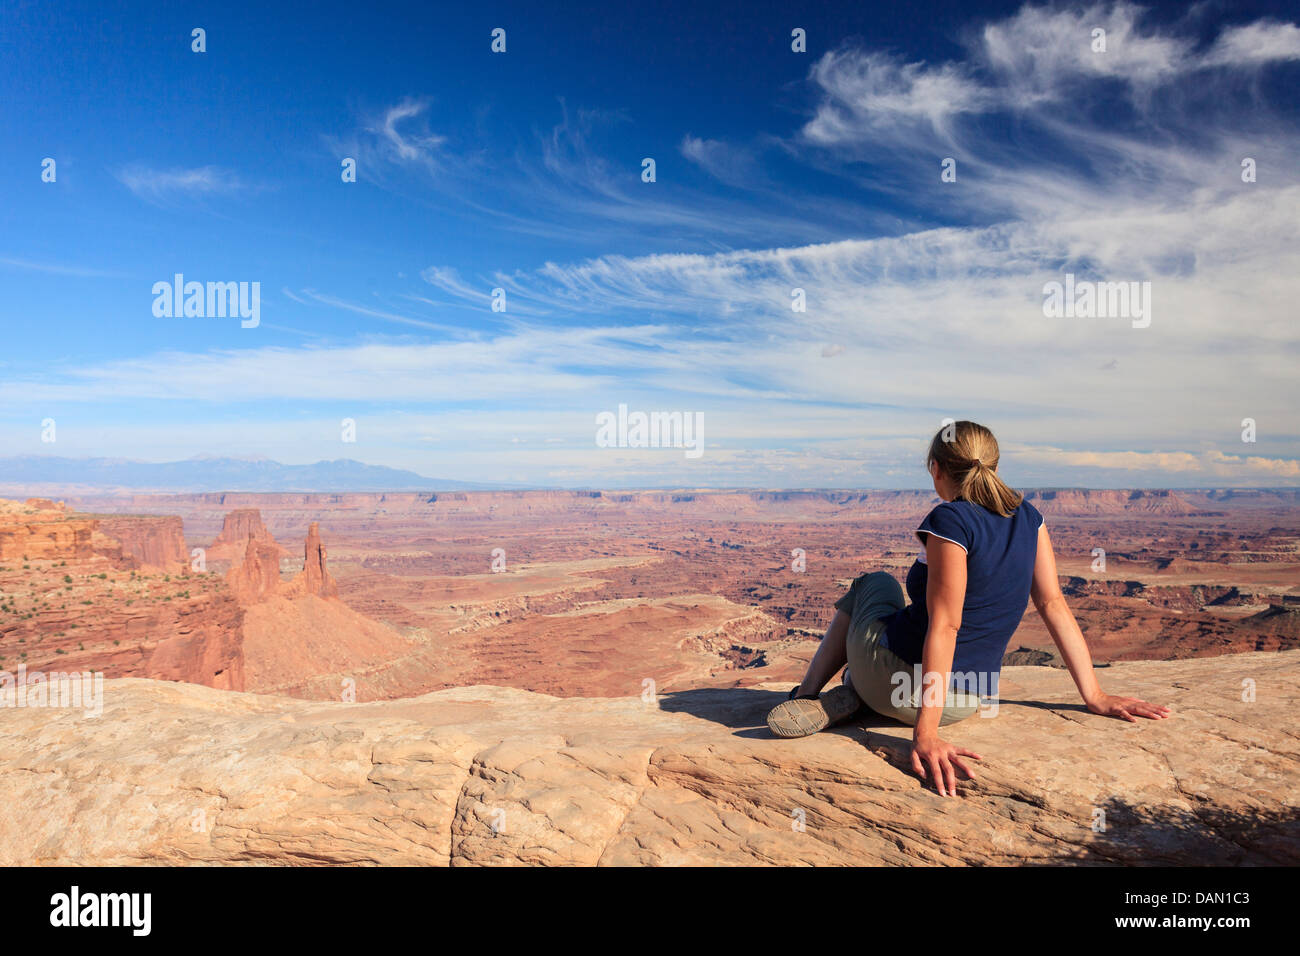 USA, Utah, Canyonlands National Park, Island in the Sky district, Grand View Point - Stock Image